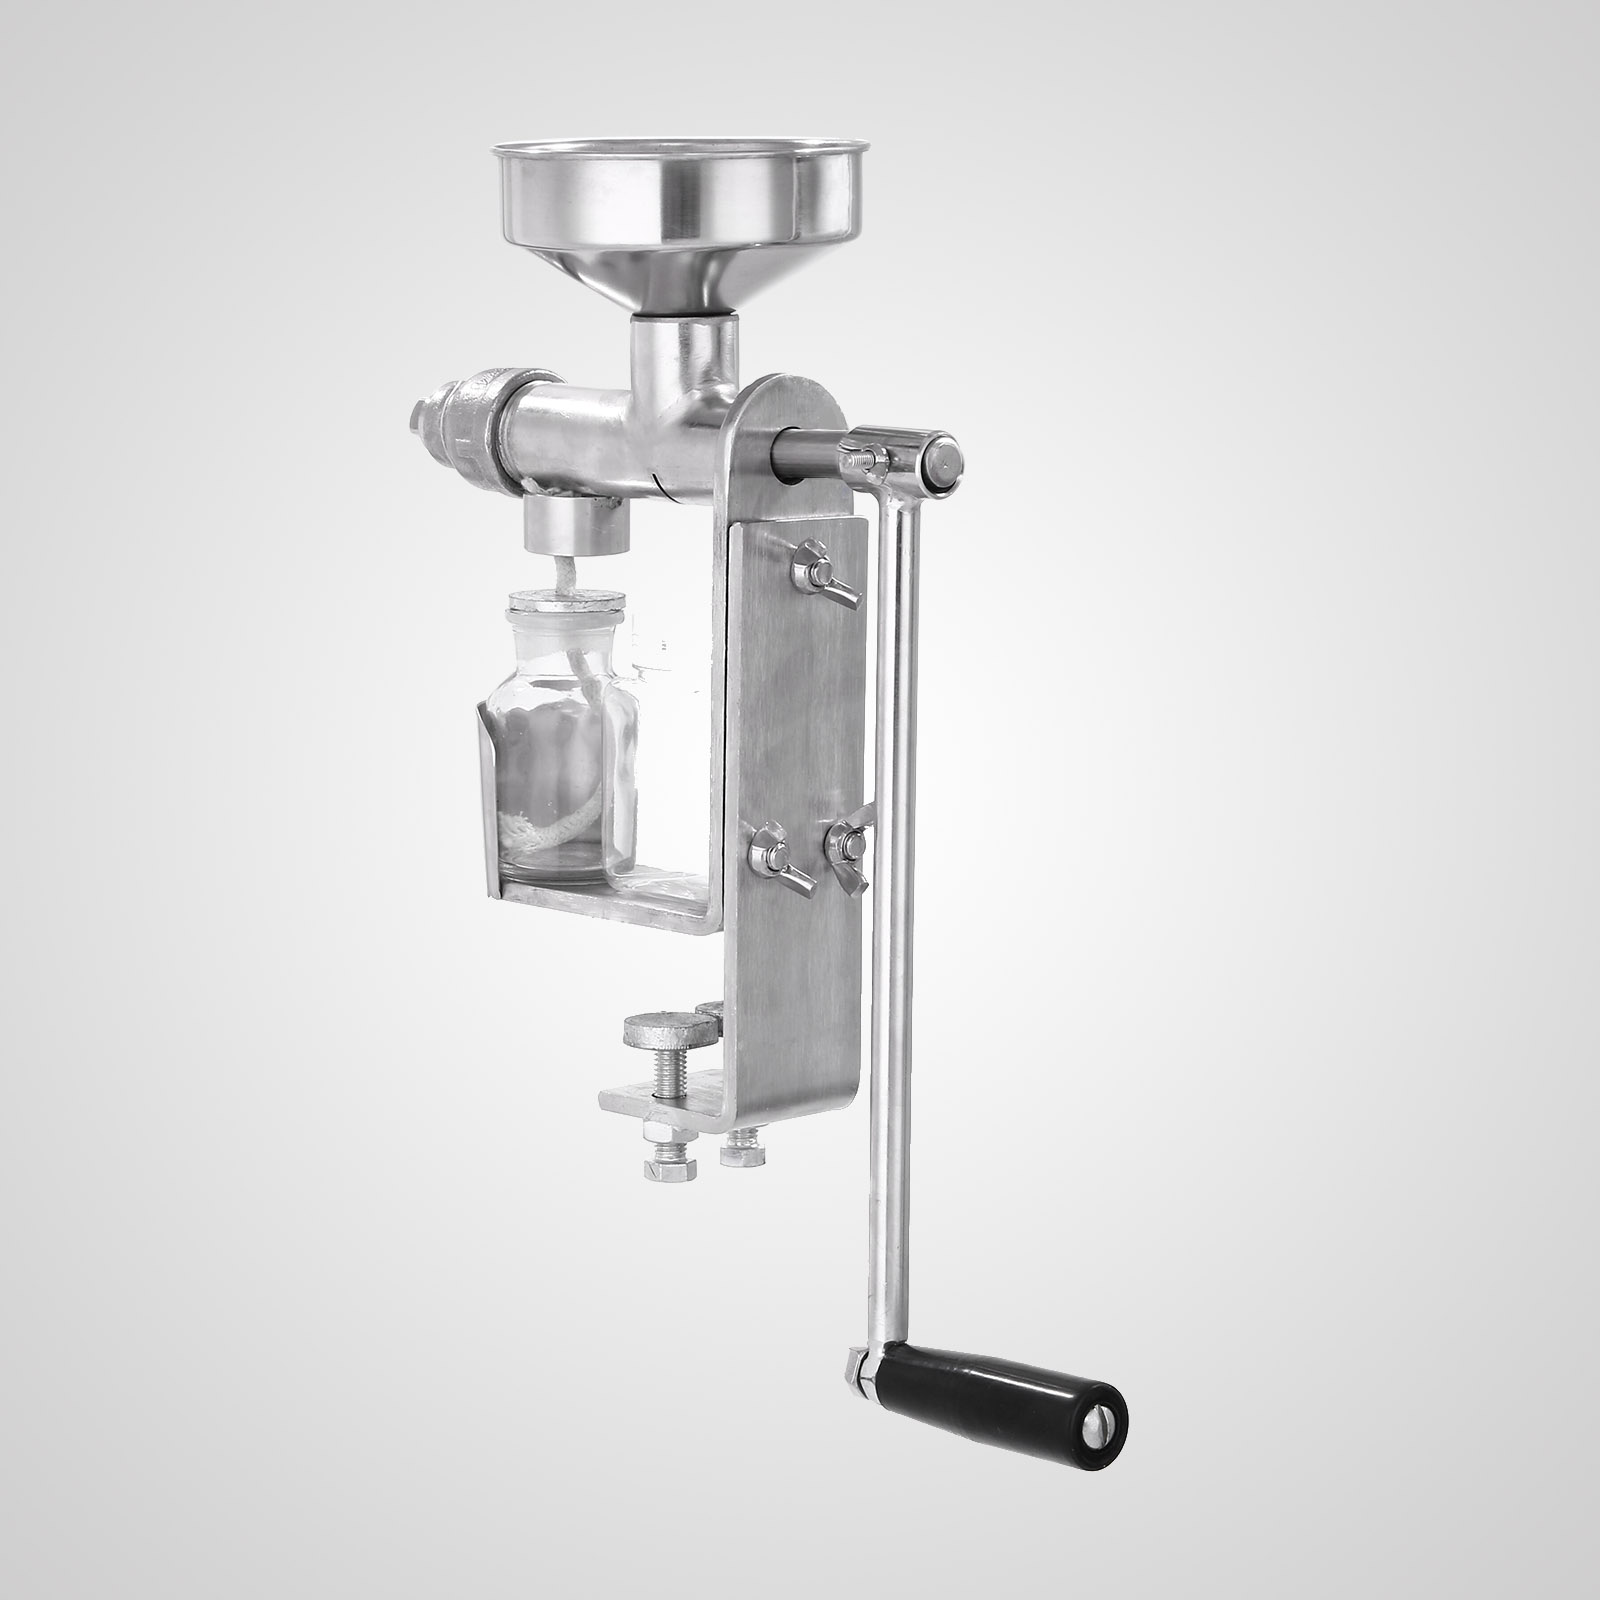 Hd Manual Oil Press Machine Expeller Extractor Stainless